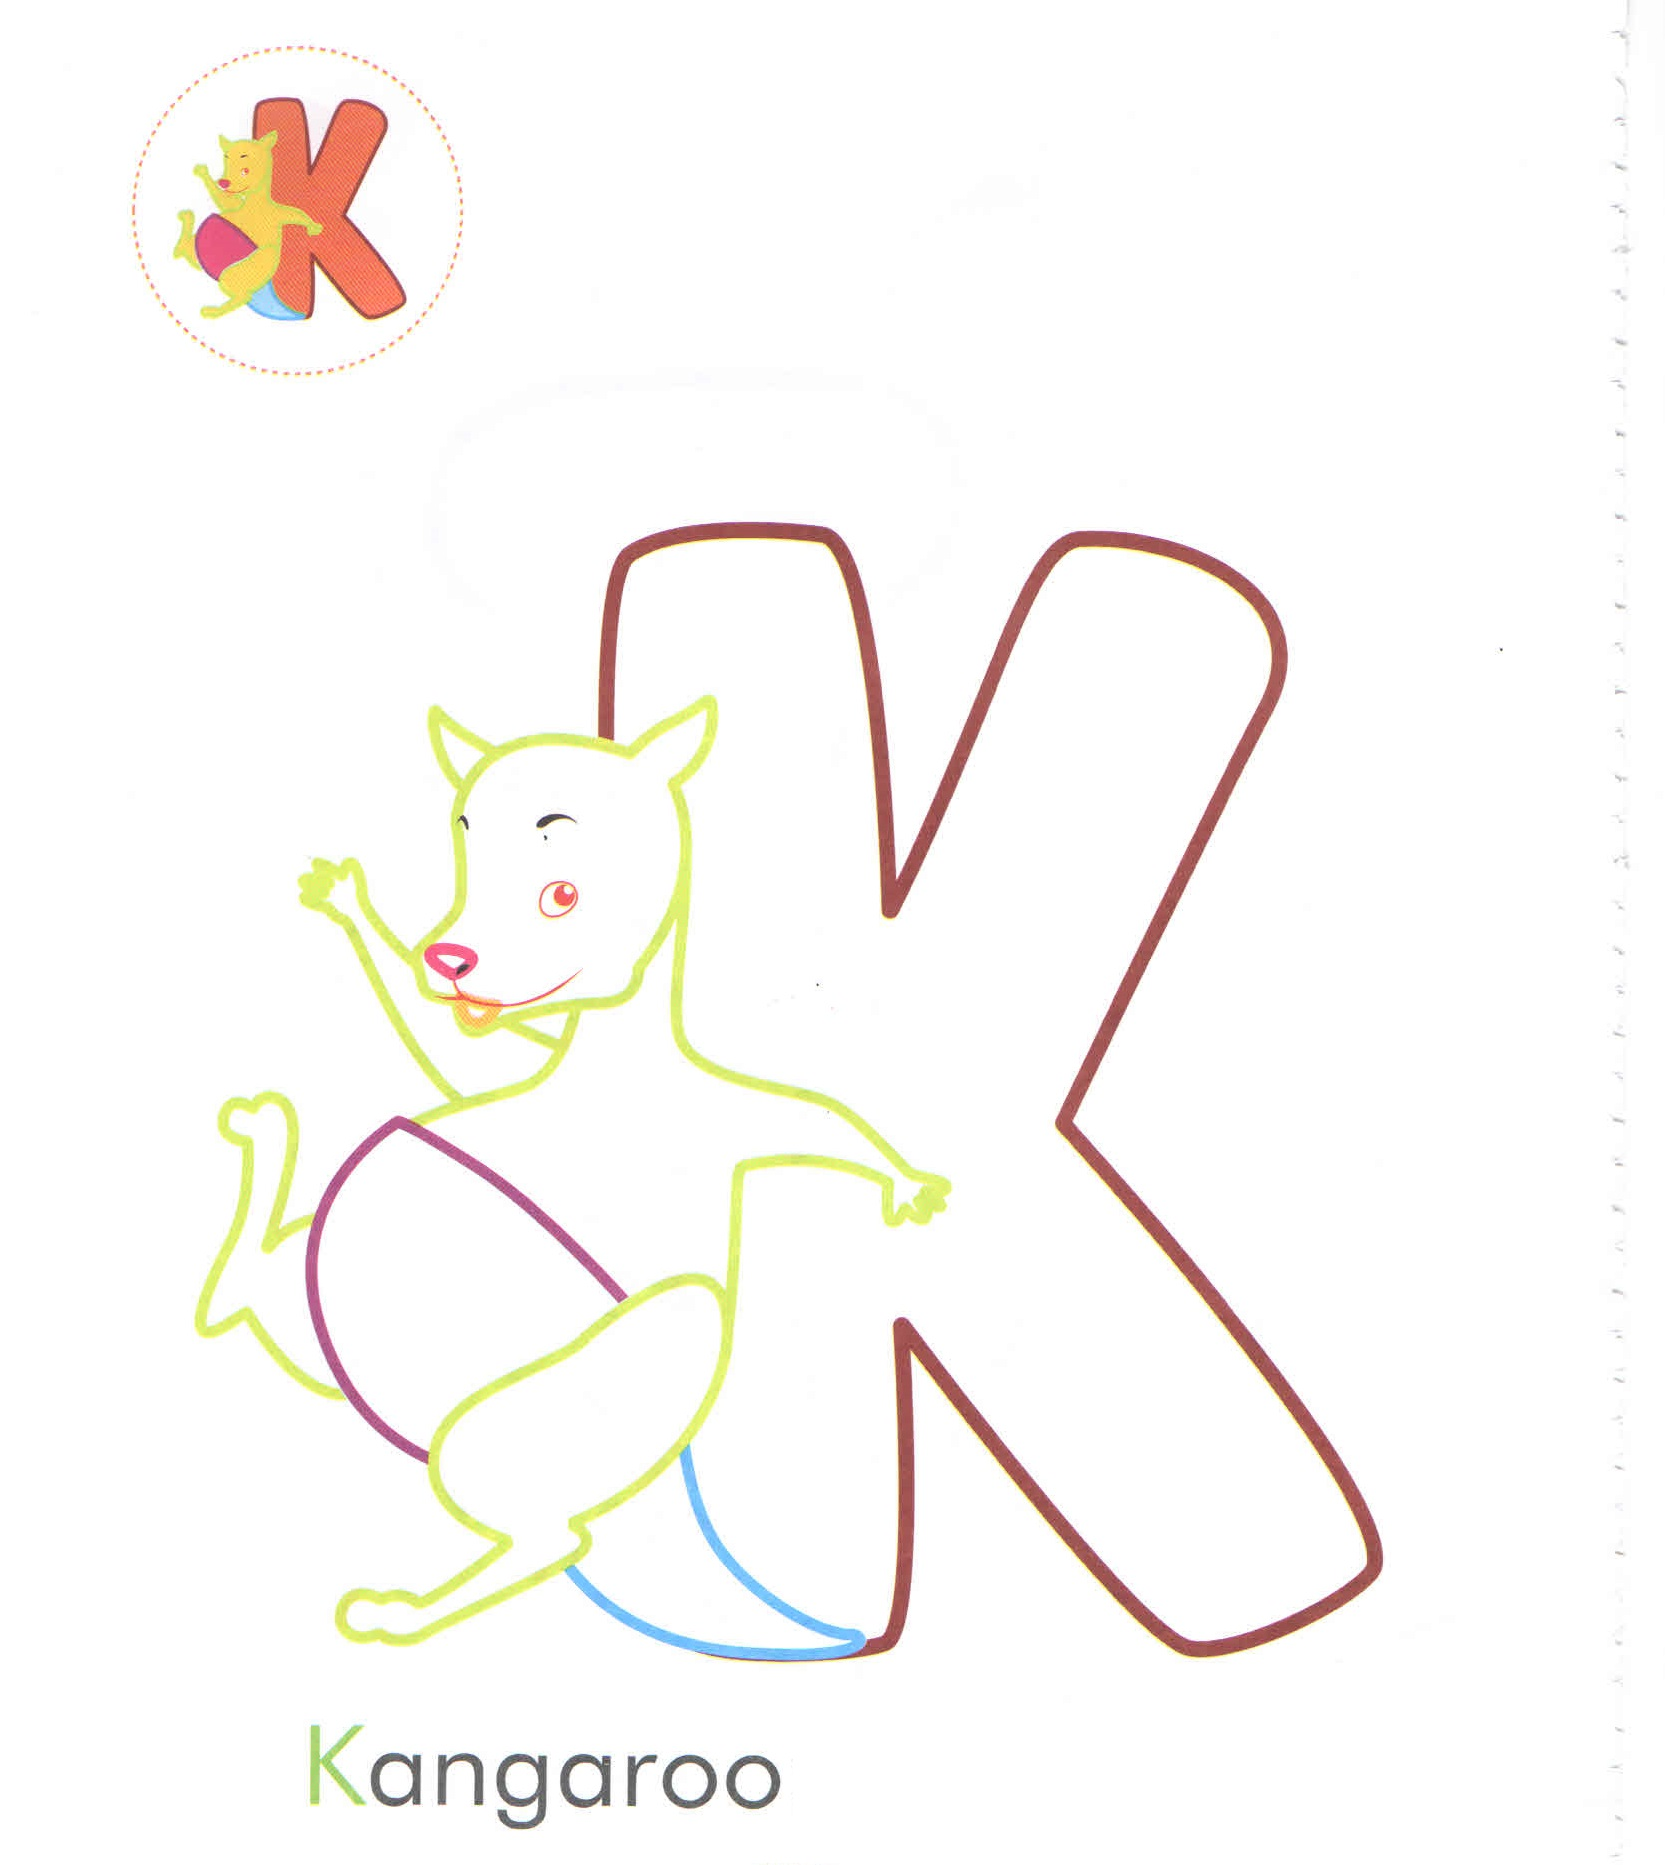 Alphabet Coloring Pages For Kindergarten Letter K Kangaroo Page Preschool